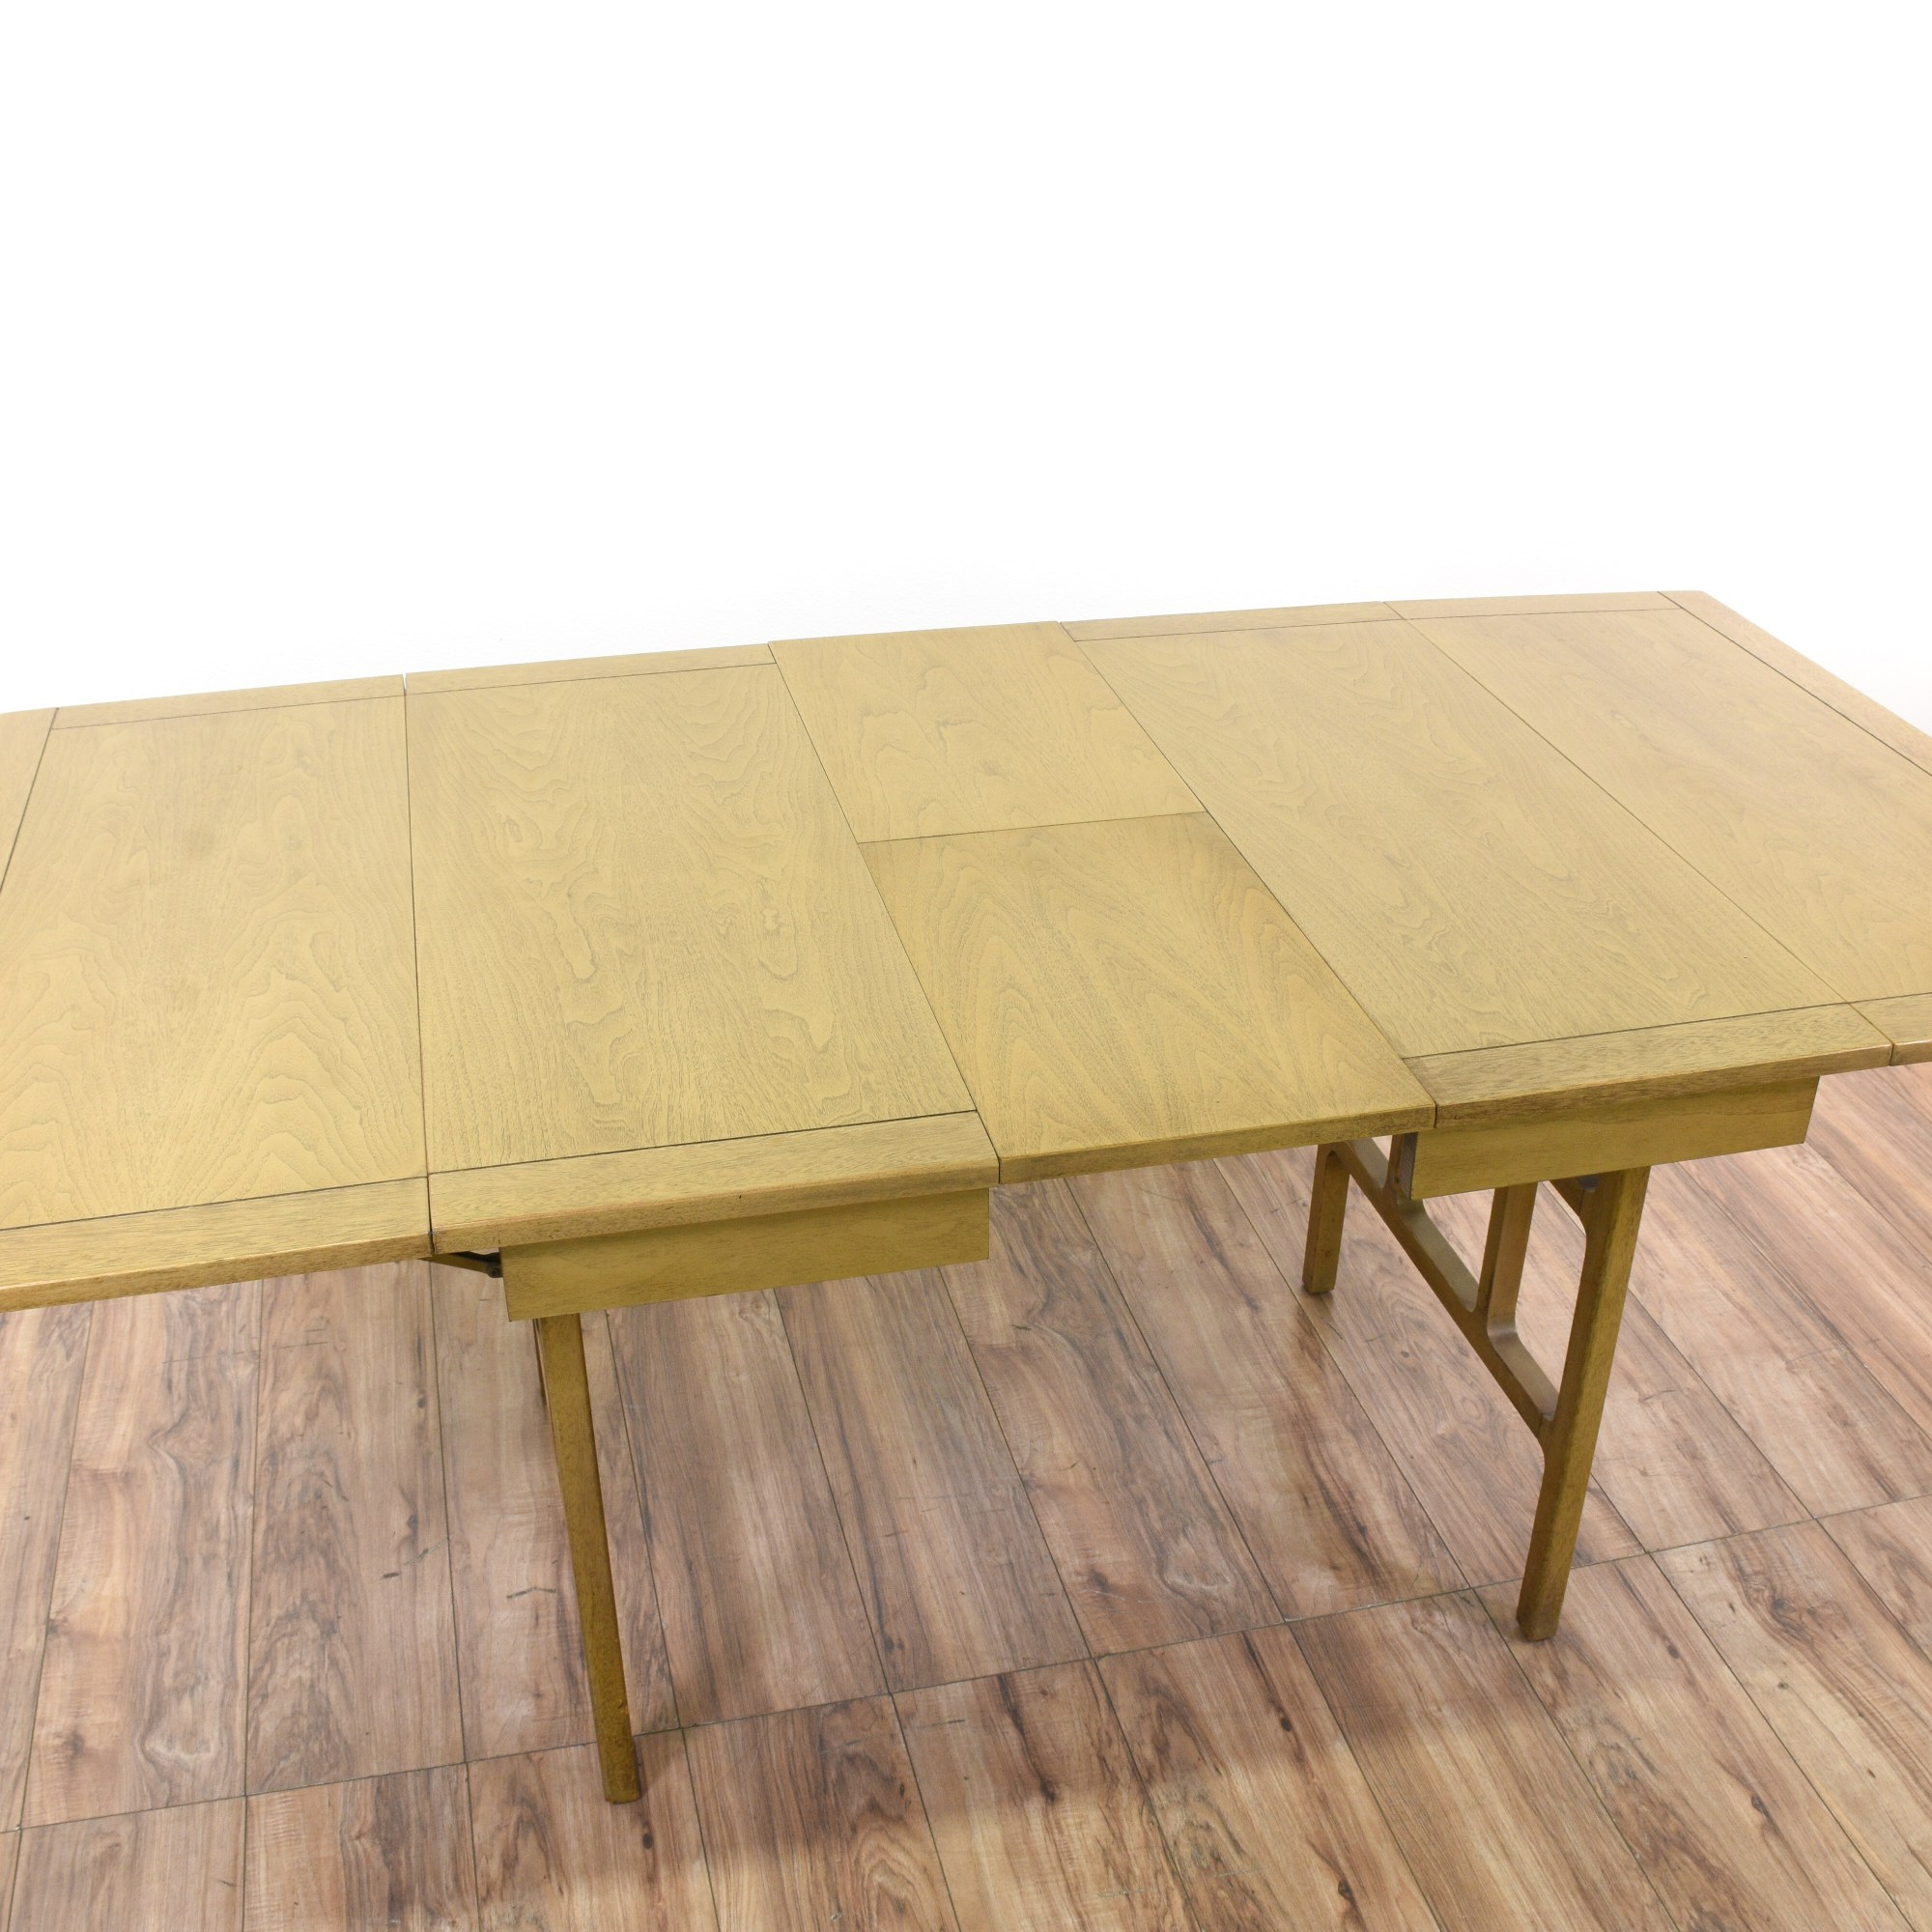 Modern Drop Leaf Tables Small Spaces Mid Century Modern Green Drop Leaf Dining Table Loveseat